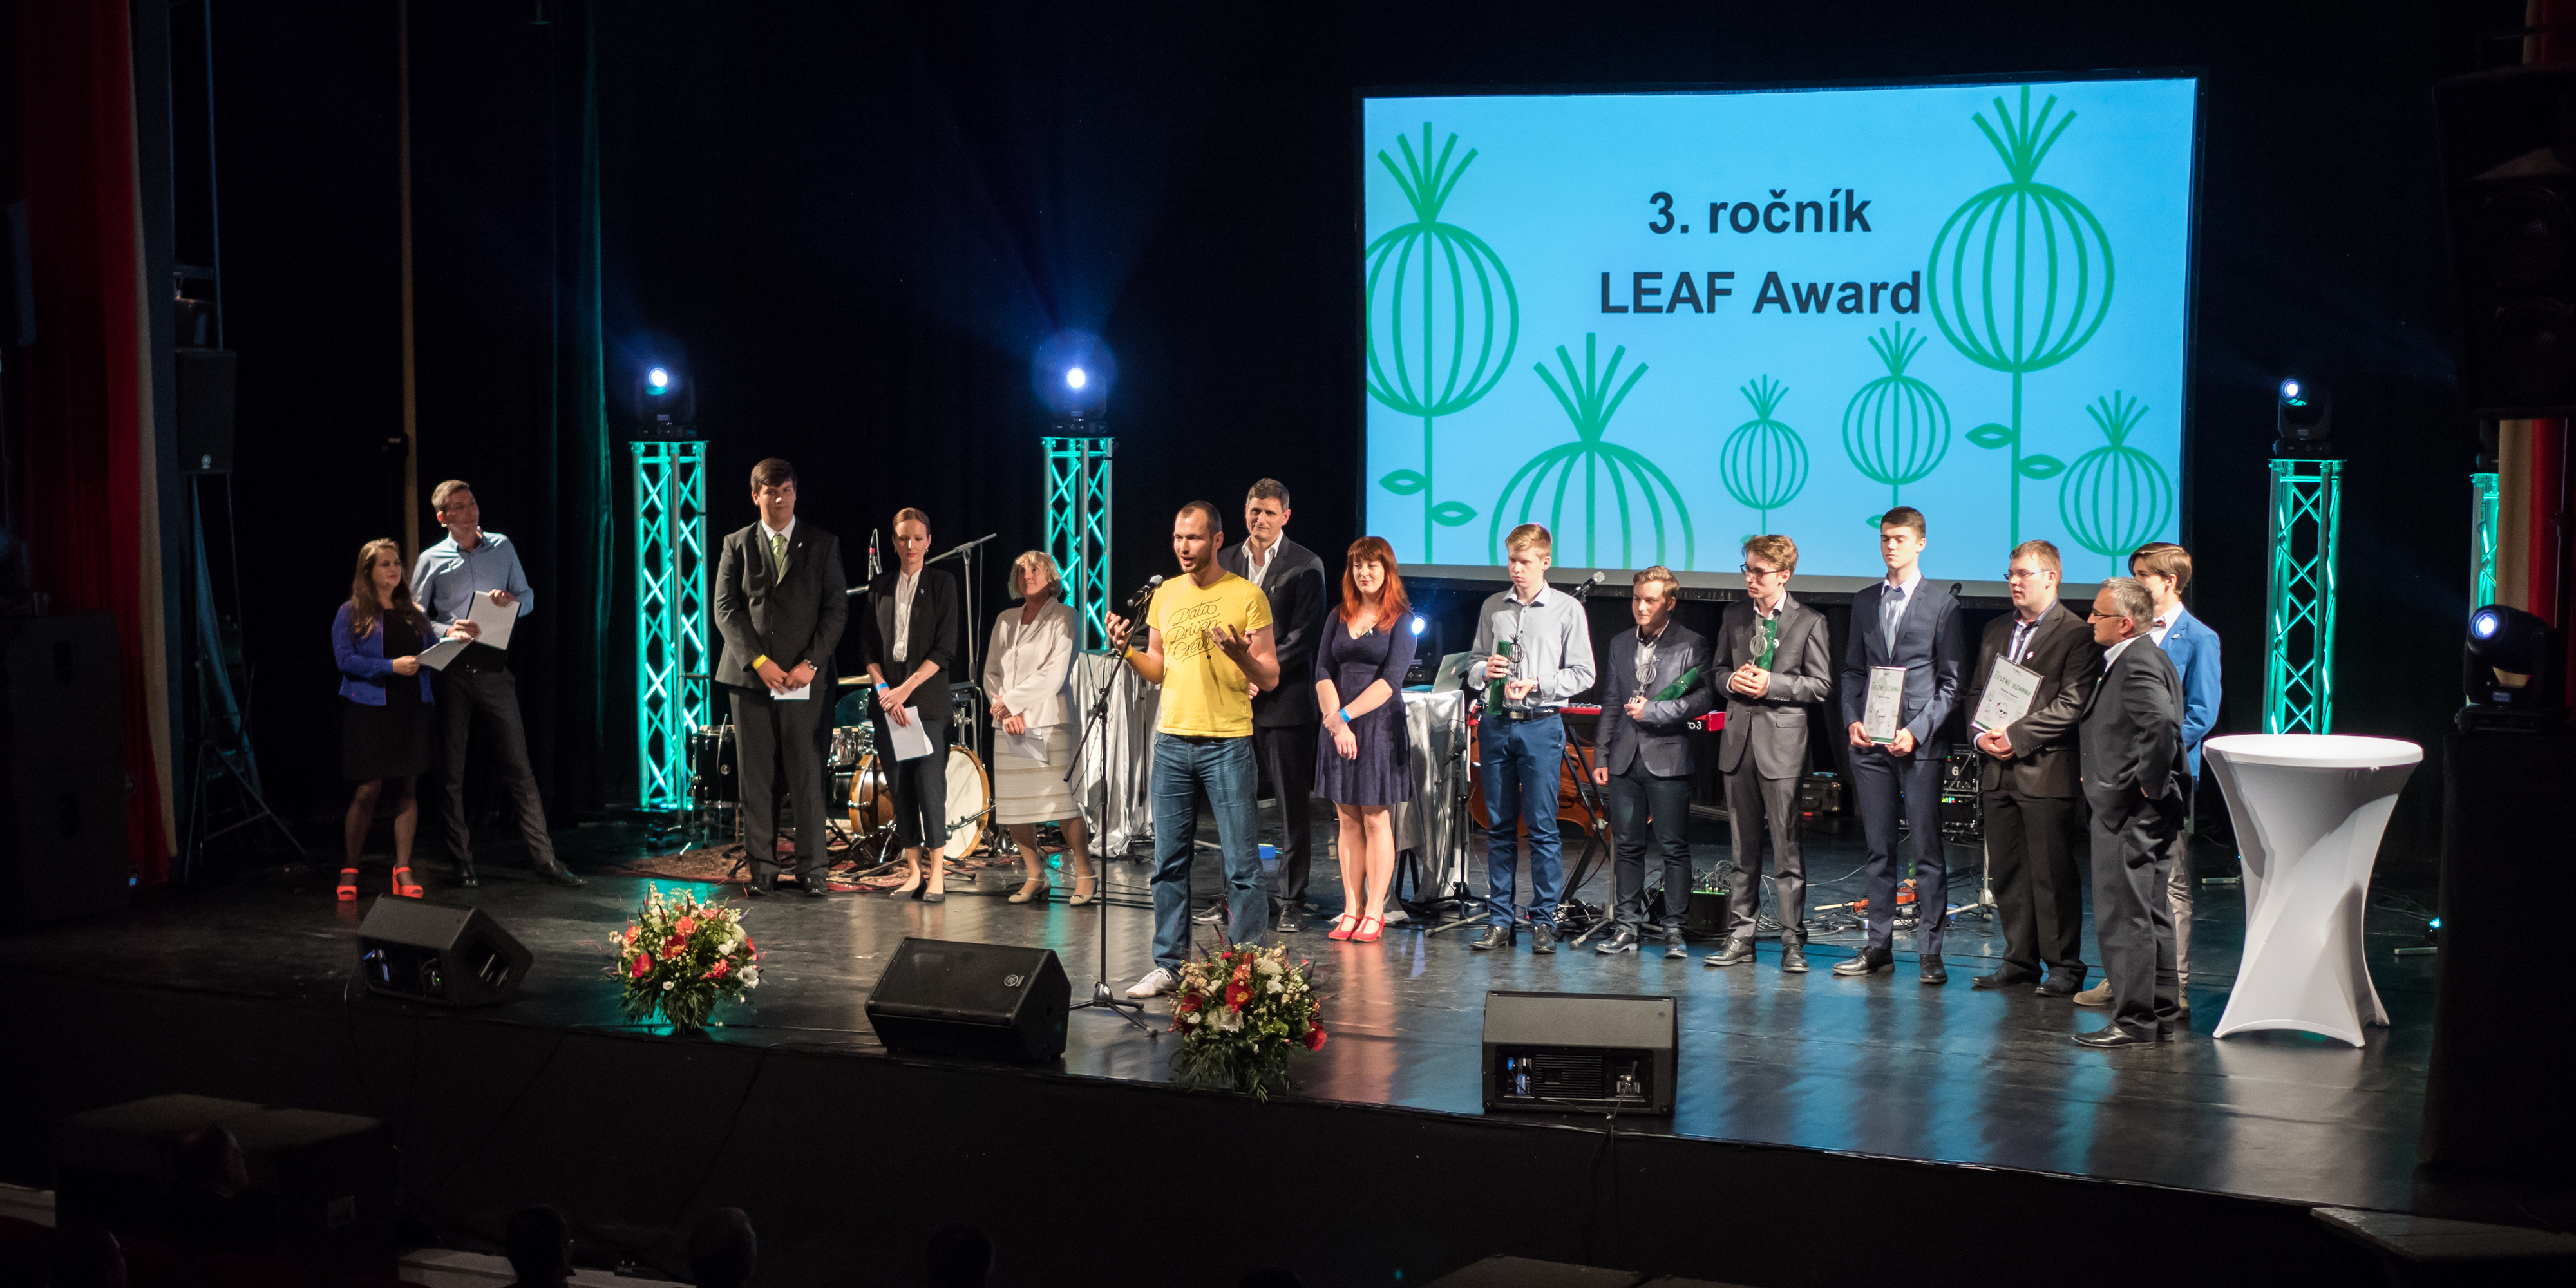 LEAF Award je program podpory a rozvoja